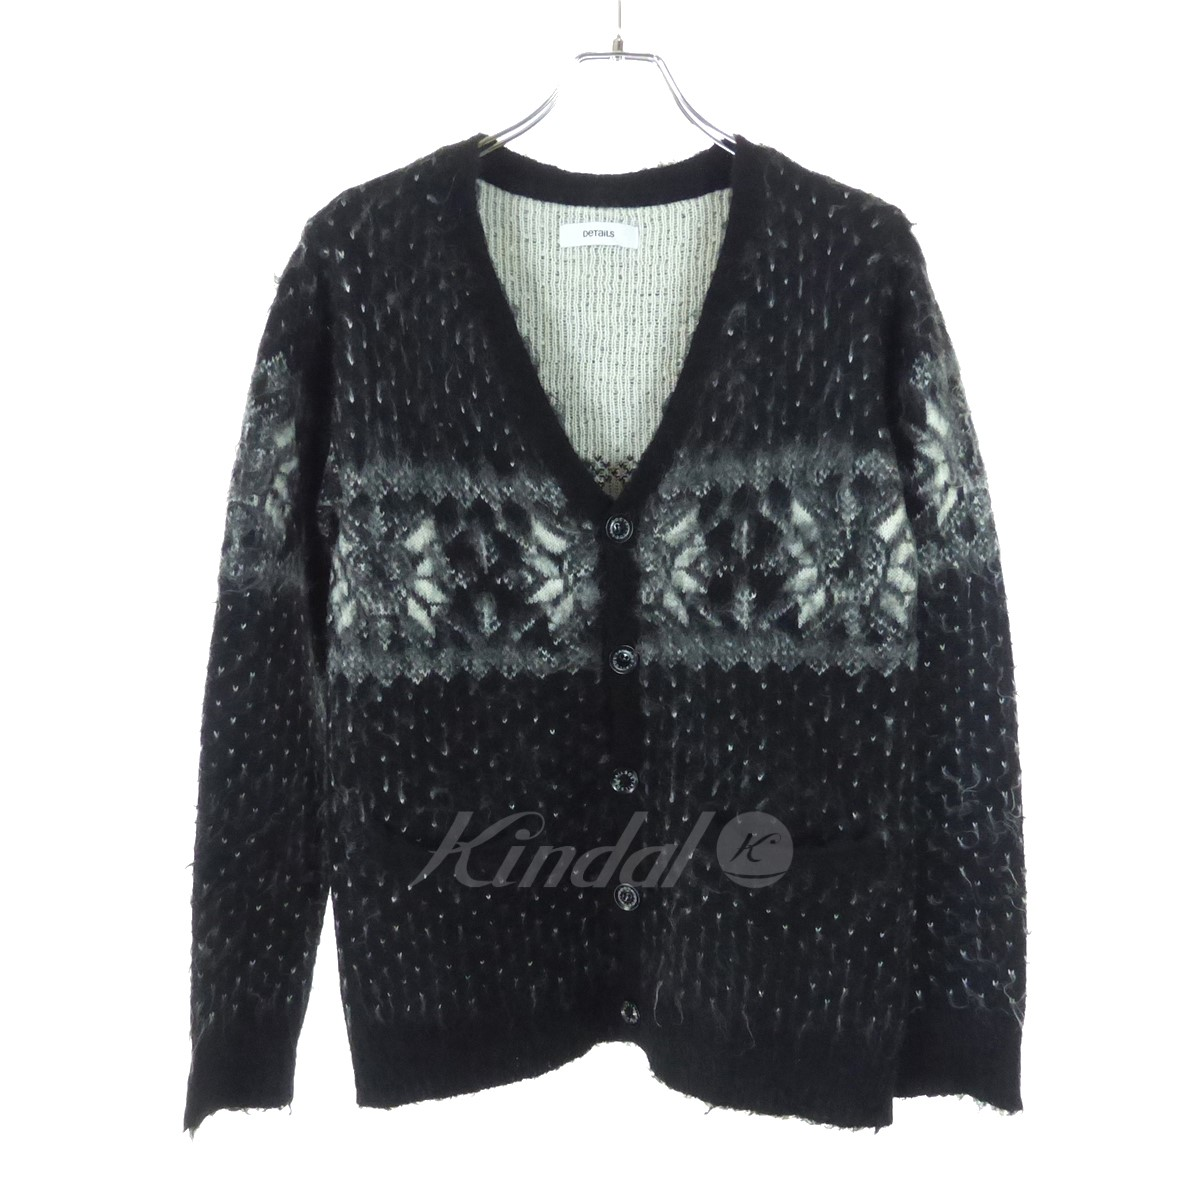 657814bb76c DETAILS Nordic events pattern knit cardigan black X white size  M (D tales)